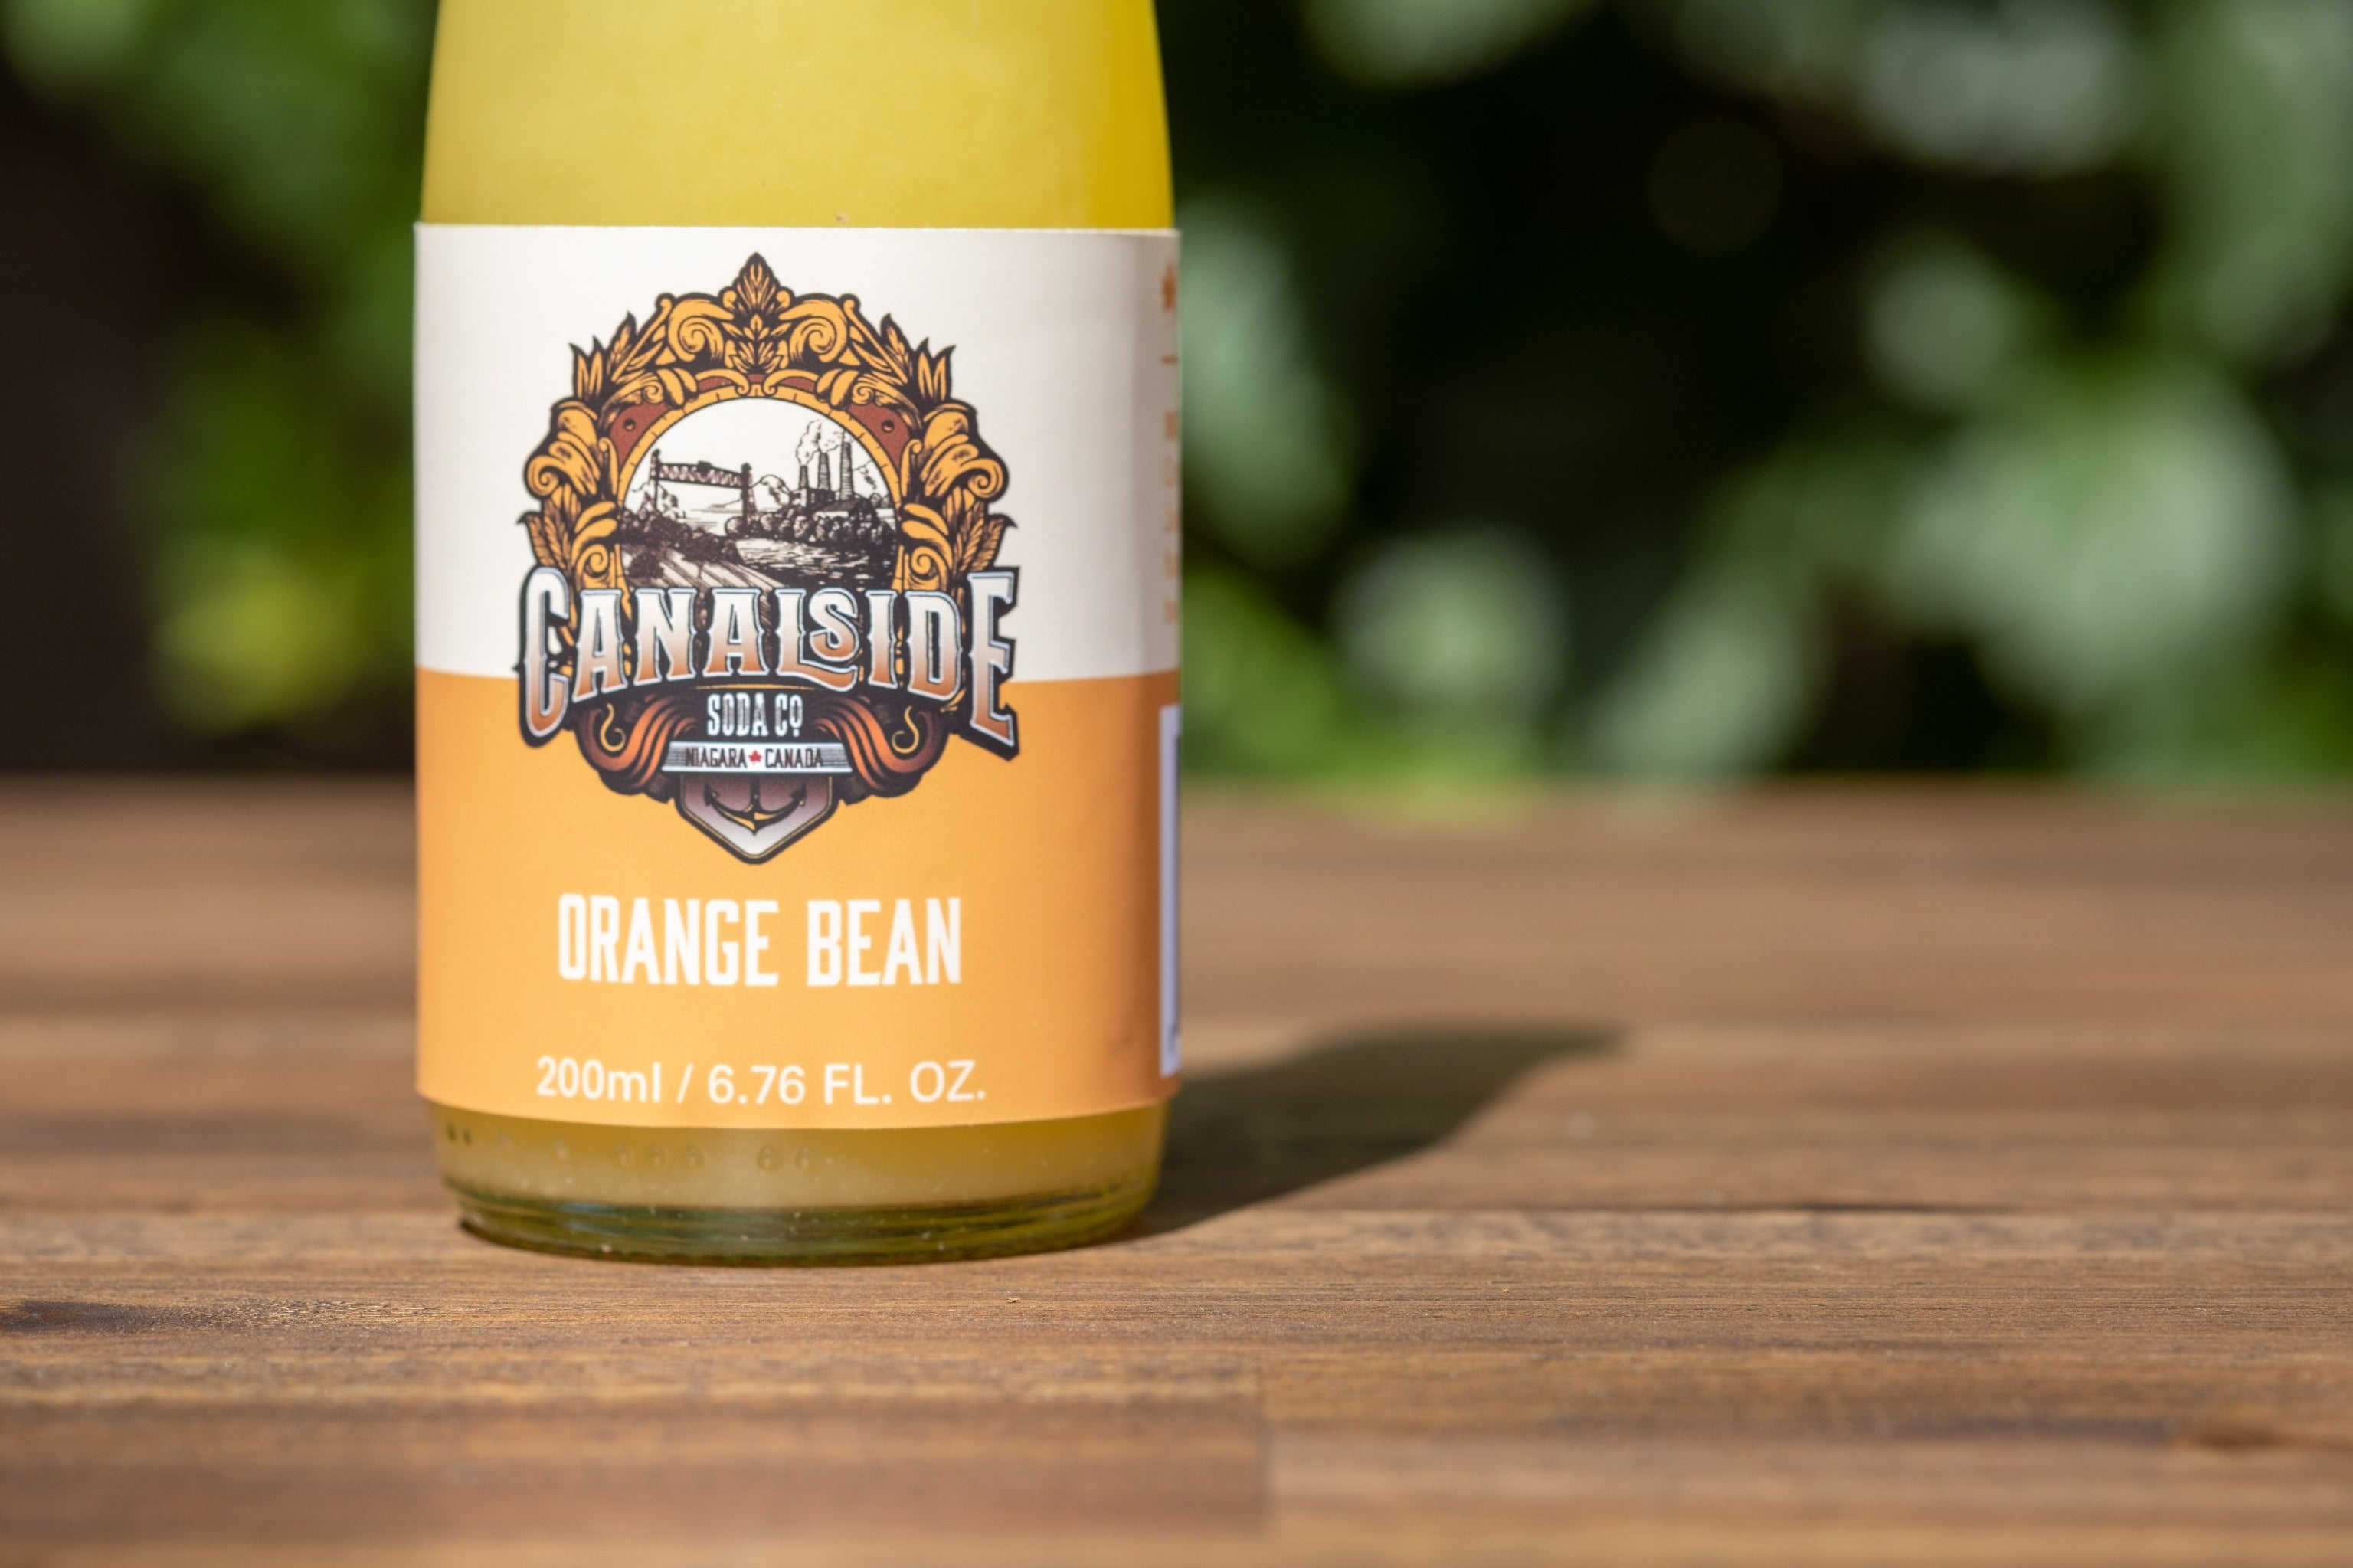 Orange Bean Soda (200ml Bottles)